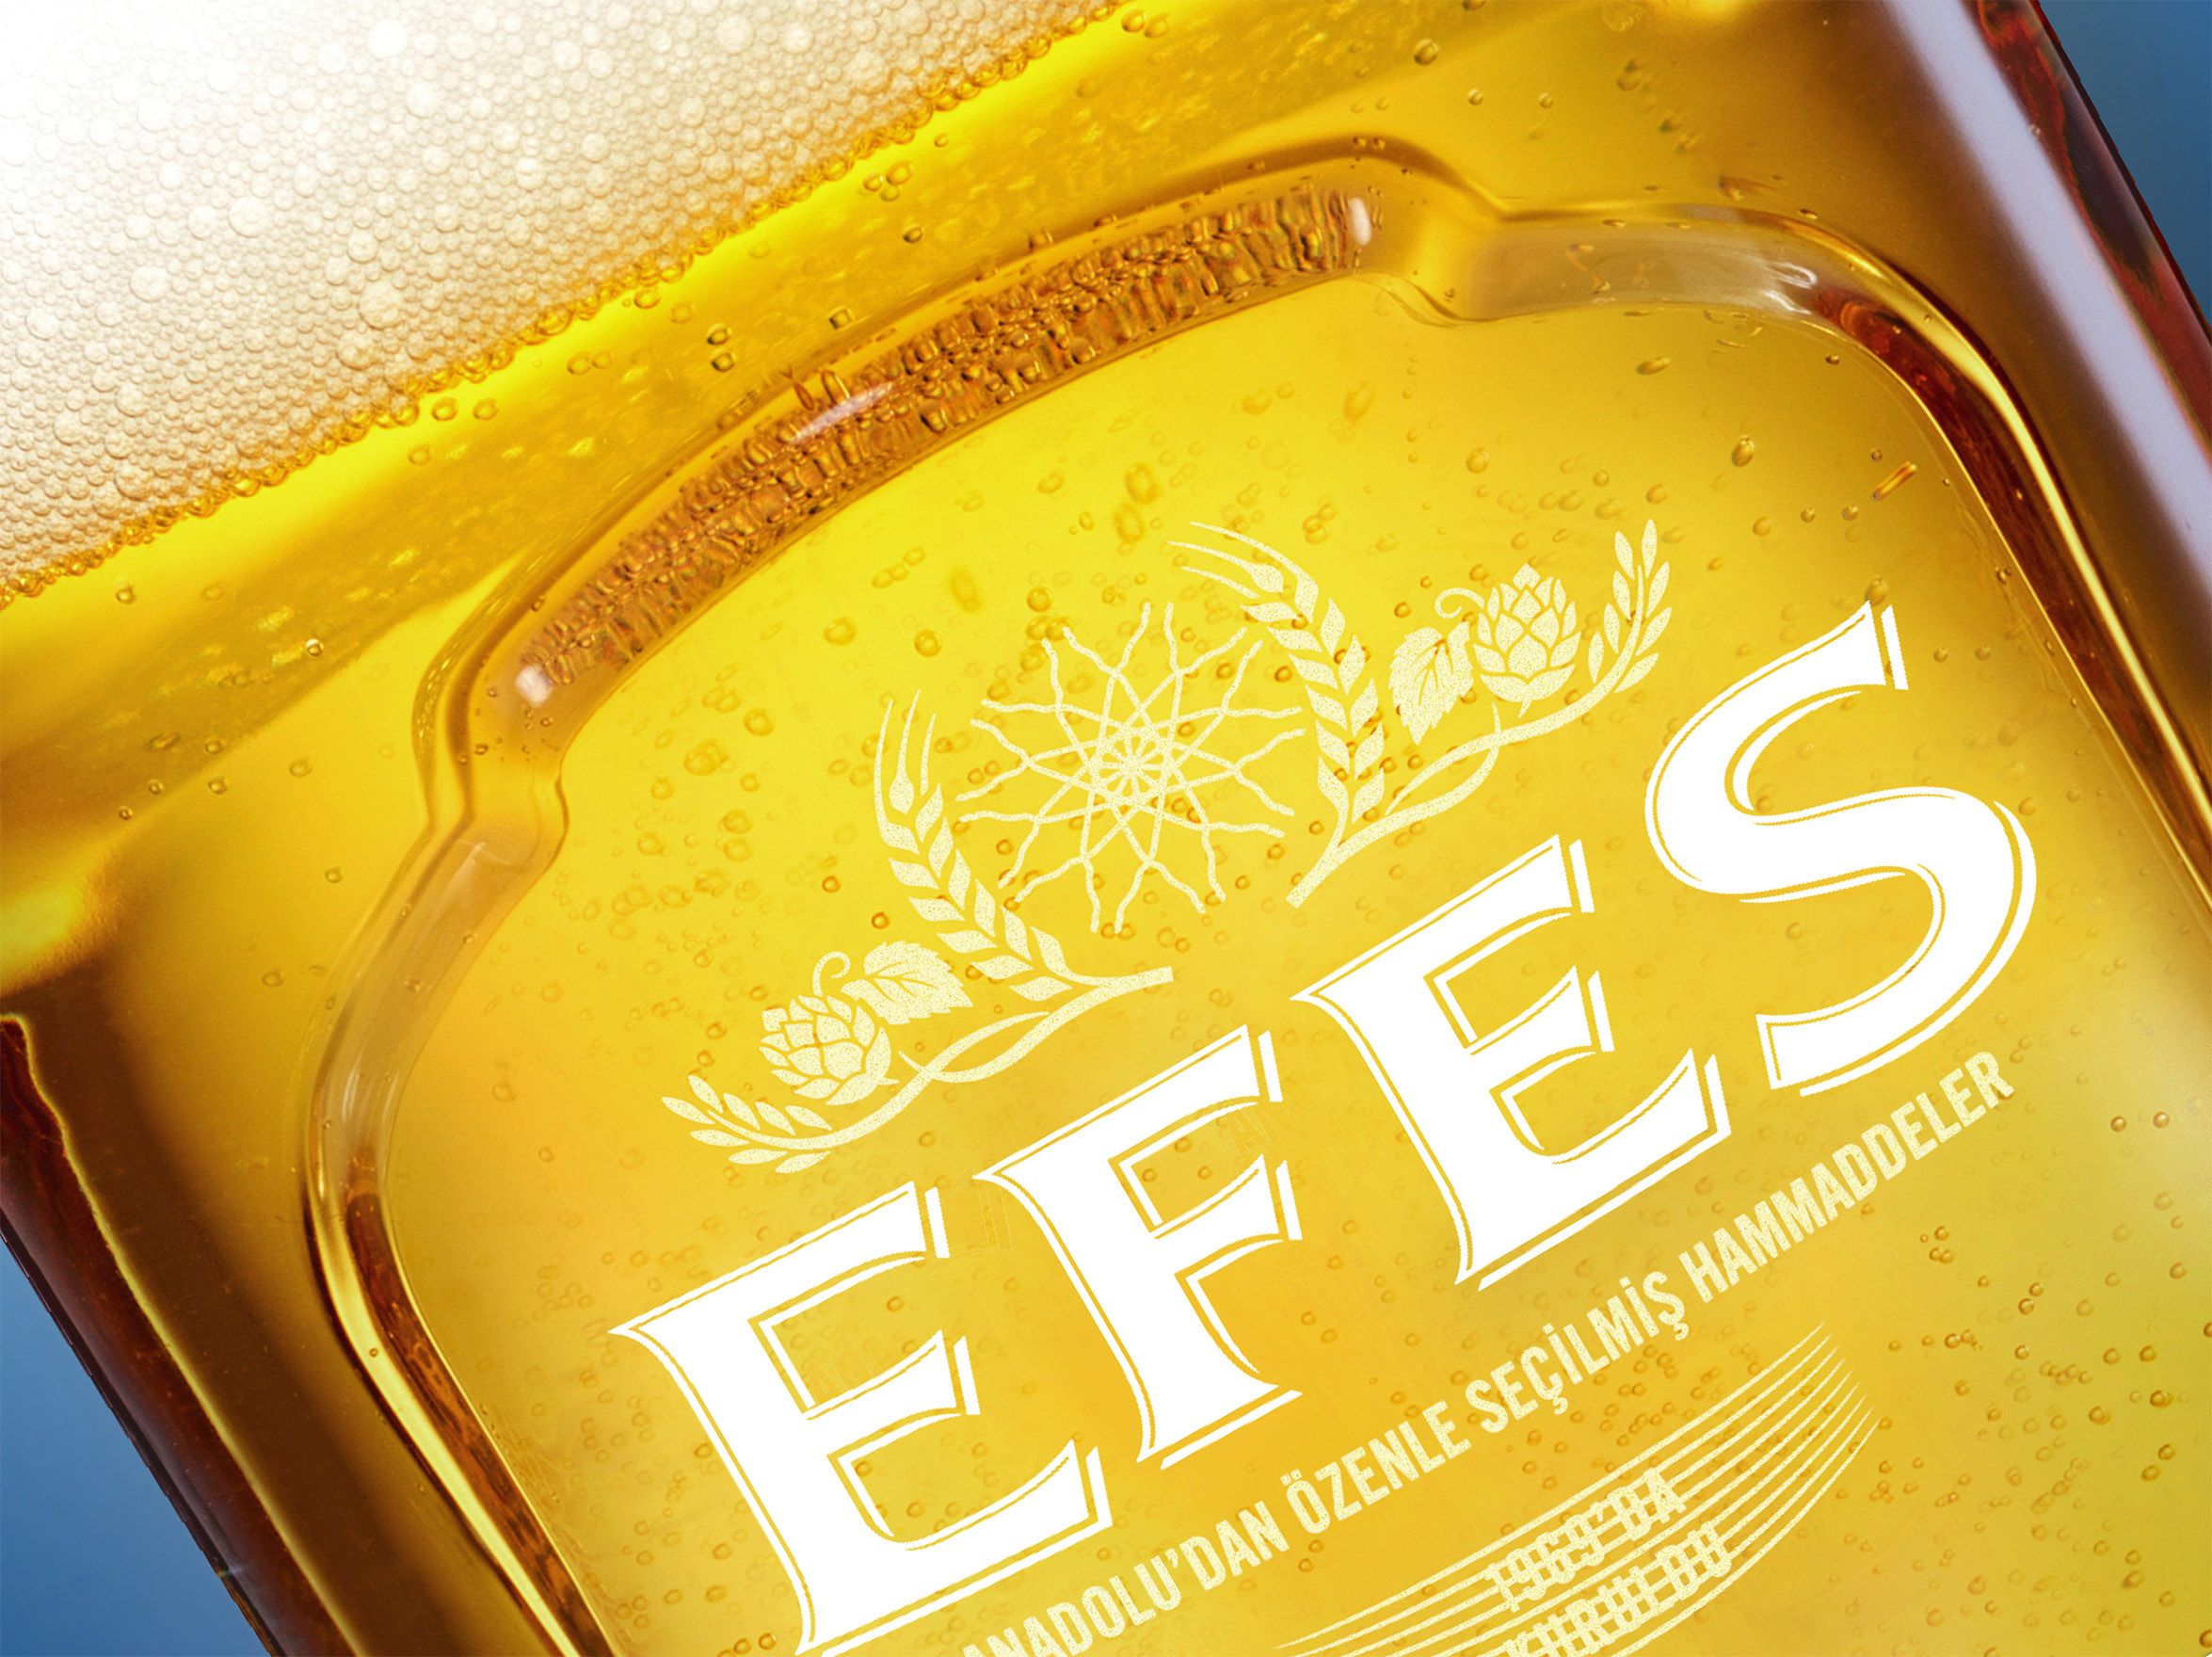 Efes Glassware Worthy of Being Toasted